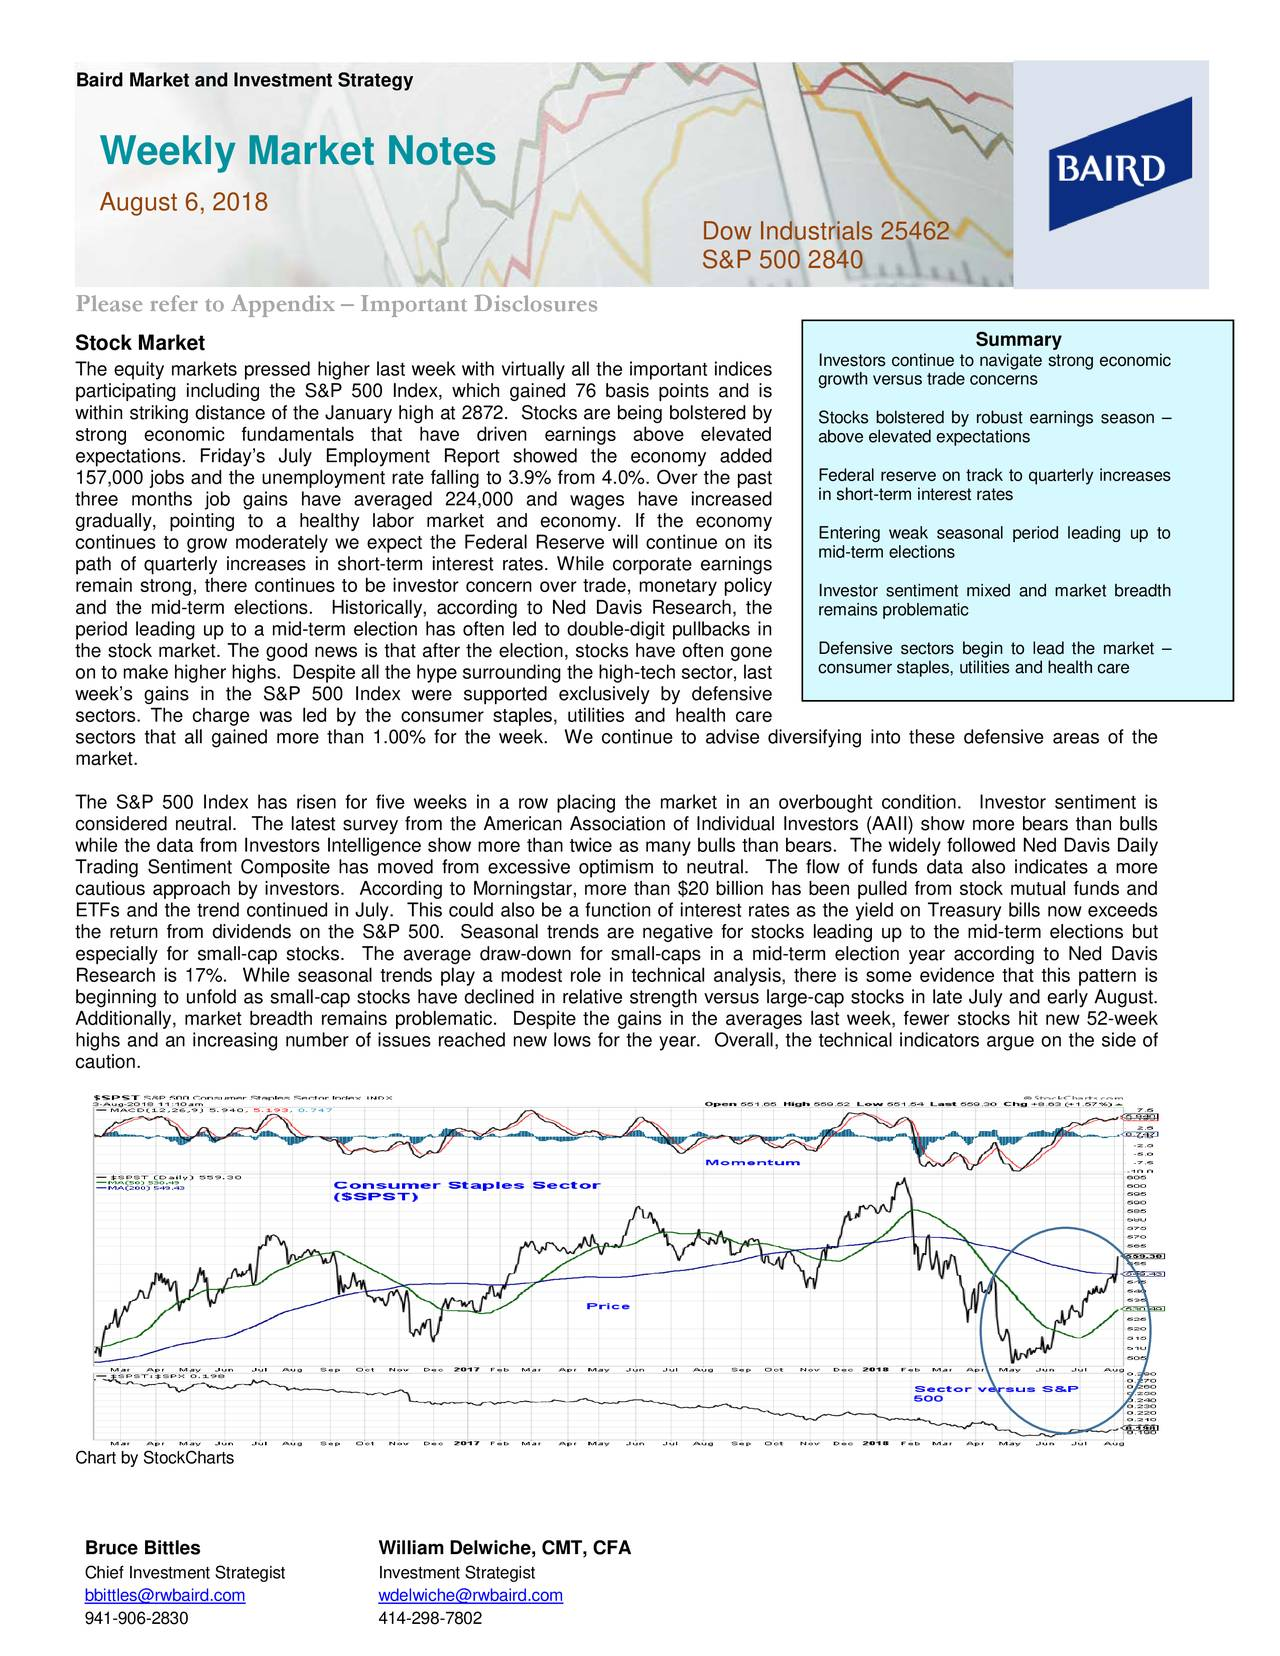 Weekly Market Notes August 6, 2018 Dow Industrials 25462 S&P 500 2840 Please refer to Appendix – Important Disclosures Stock Market Summary Investors continue to navigate strong economic The equity markets pressed higher last week with virtually all the important indices growth versus trade concerns participating including the S&P 500 Index, which gained 76 basis points and is within striking distance of the January high at 2872. Stocks are being bolstered by Stocks bolstered by robust earnings season – strong economic fundamentals that have driven earnings above elevated above elevated expectations expectations. Friday's July Employment Report showed the economy added 157,000 jobs and the unemployment rate falling to 3.9% from 4.0%. Over the past Federal reserve on track to quarterly increases in short-term interest rates three months job gains have averaged 224,000 and wages have increased gradually, pointing to a healthy labor market and economy. If the economy Entering weak seasonal period leading upto continues to grow moderately we expect the Federal Reserve will continue on its mid-term elections path of quarterly increases in short -term interest rates. While corporate earnings remain strong, there continues to be investor concern over trade, monetary policy Investor sentiment mixed and market breadth and the mid- term elections. Historically, according to Ned Davis Research, the remains problematic period leading up to a mid-term e lection has often led to double- digit pullbacks in Defensive sectors begin to lead the market – the stock market. The good news is that after the election, stocks have often gone consumer staples, utilities and health care on to make higher highs. Despite all the hype surrounding the high-tech sector, last week's gains in the S&P 500 Index w ere supported exclusively by defensive sectors. The charge was led by the consumer staples, utilities and health care sectors that all gained more than 1.00% for the week. We continue to advise diversifying into these defensive areas of the market. The S&P 500 Index has risen for five weeks in a row placing the market in an overbought conditi on. Investor sentiment is considered neutral. The latest survey from the American Association of Individual Investors (AAII) show more bears than bull s while the data from Investors Intelligence show more than twice as many bulls than bears. The widely followed Ned Davis Daily Trading Sentiment Composite has moved from excessive optimism to neutral. The flow of funds data also indicates a more cautious approach by investors. According to Morningstar, more than $20 billion has been pulled from stock mut ual funds and ETFs and the trend continued in July. This could also be a function of interest rates as the yield on Treasury bills now exceeds the return from dividends on the S&P 500. Seasonal trends are negative for stocks leading up to the mid-term el ections but especially for small-cap stocks. The average draw -down for small -caps in a mid-term election year according to Ned Davis Research is 17%. While seasonal trends play a modest role in technical analysis, there is some evidence that this pattern is beginning to unfold as small -cap stocks have declined in relative strength versus large-cap stocks in late July and early August. Additionally, market breadth remains problematic. Despite the gains in the averages last week , fewer stocks hit new 52-w eek highs and an increasing number of issues reached new lows for the year. Overall, the technical indicators argue on the side of caution. Chart by StockCharts Bruce Bittles William Delwiche, CMT, CFA Chief Investment Strategist Investment Strategist bbittles@rwbaird.com wdelwiche@rwbaird.com 941-906-2830 414-298-7802